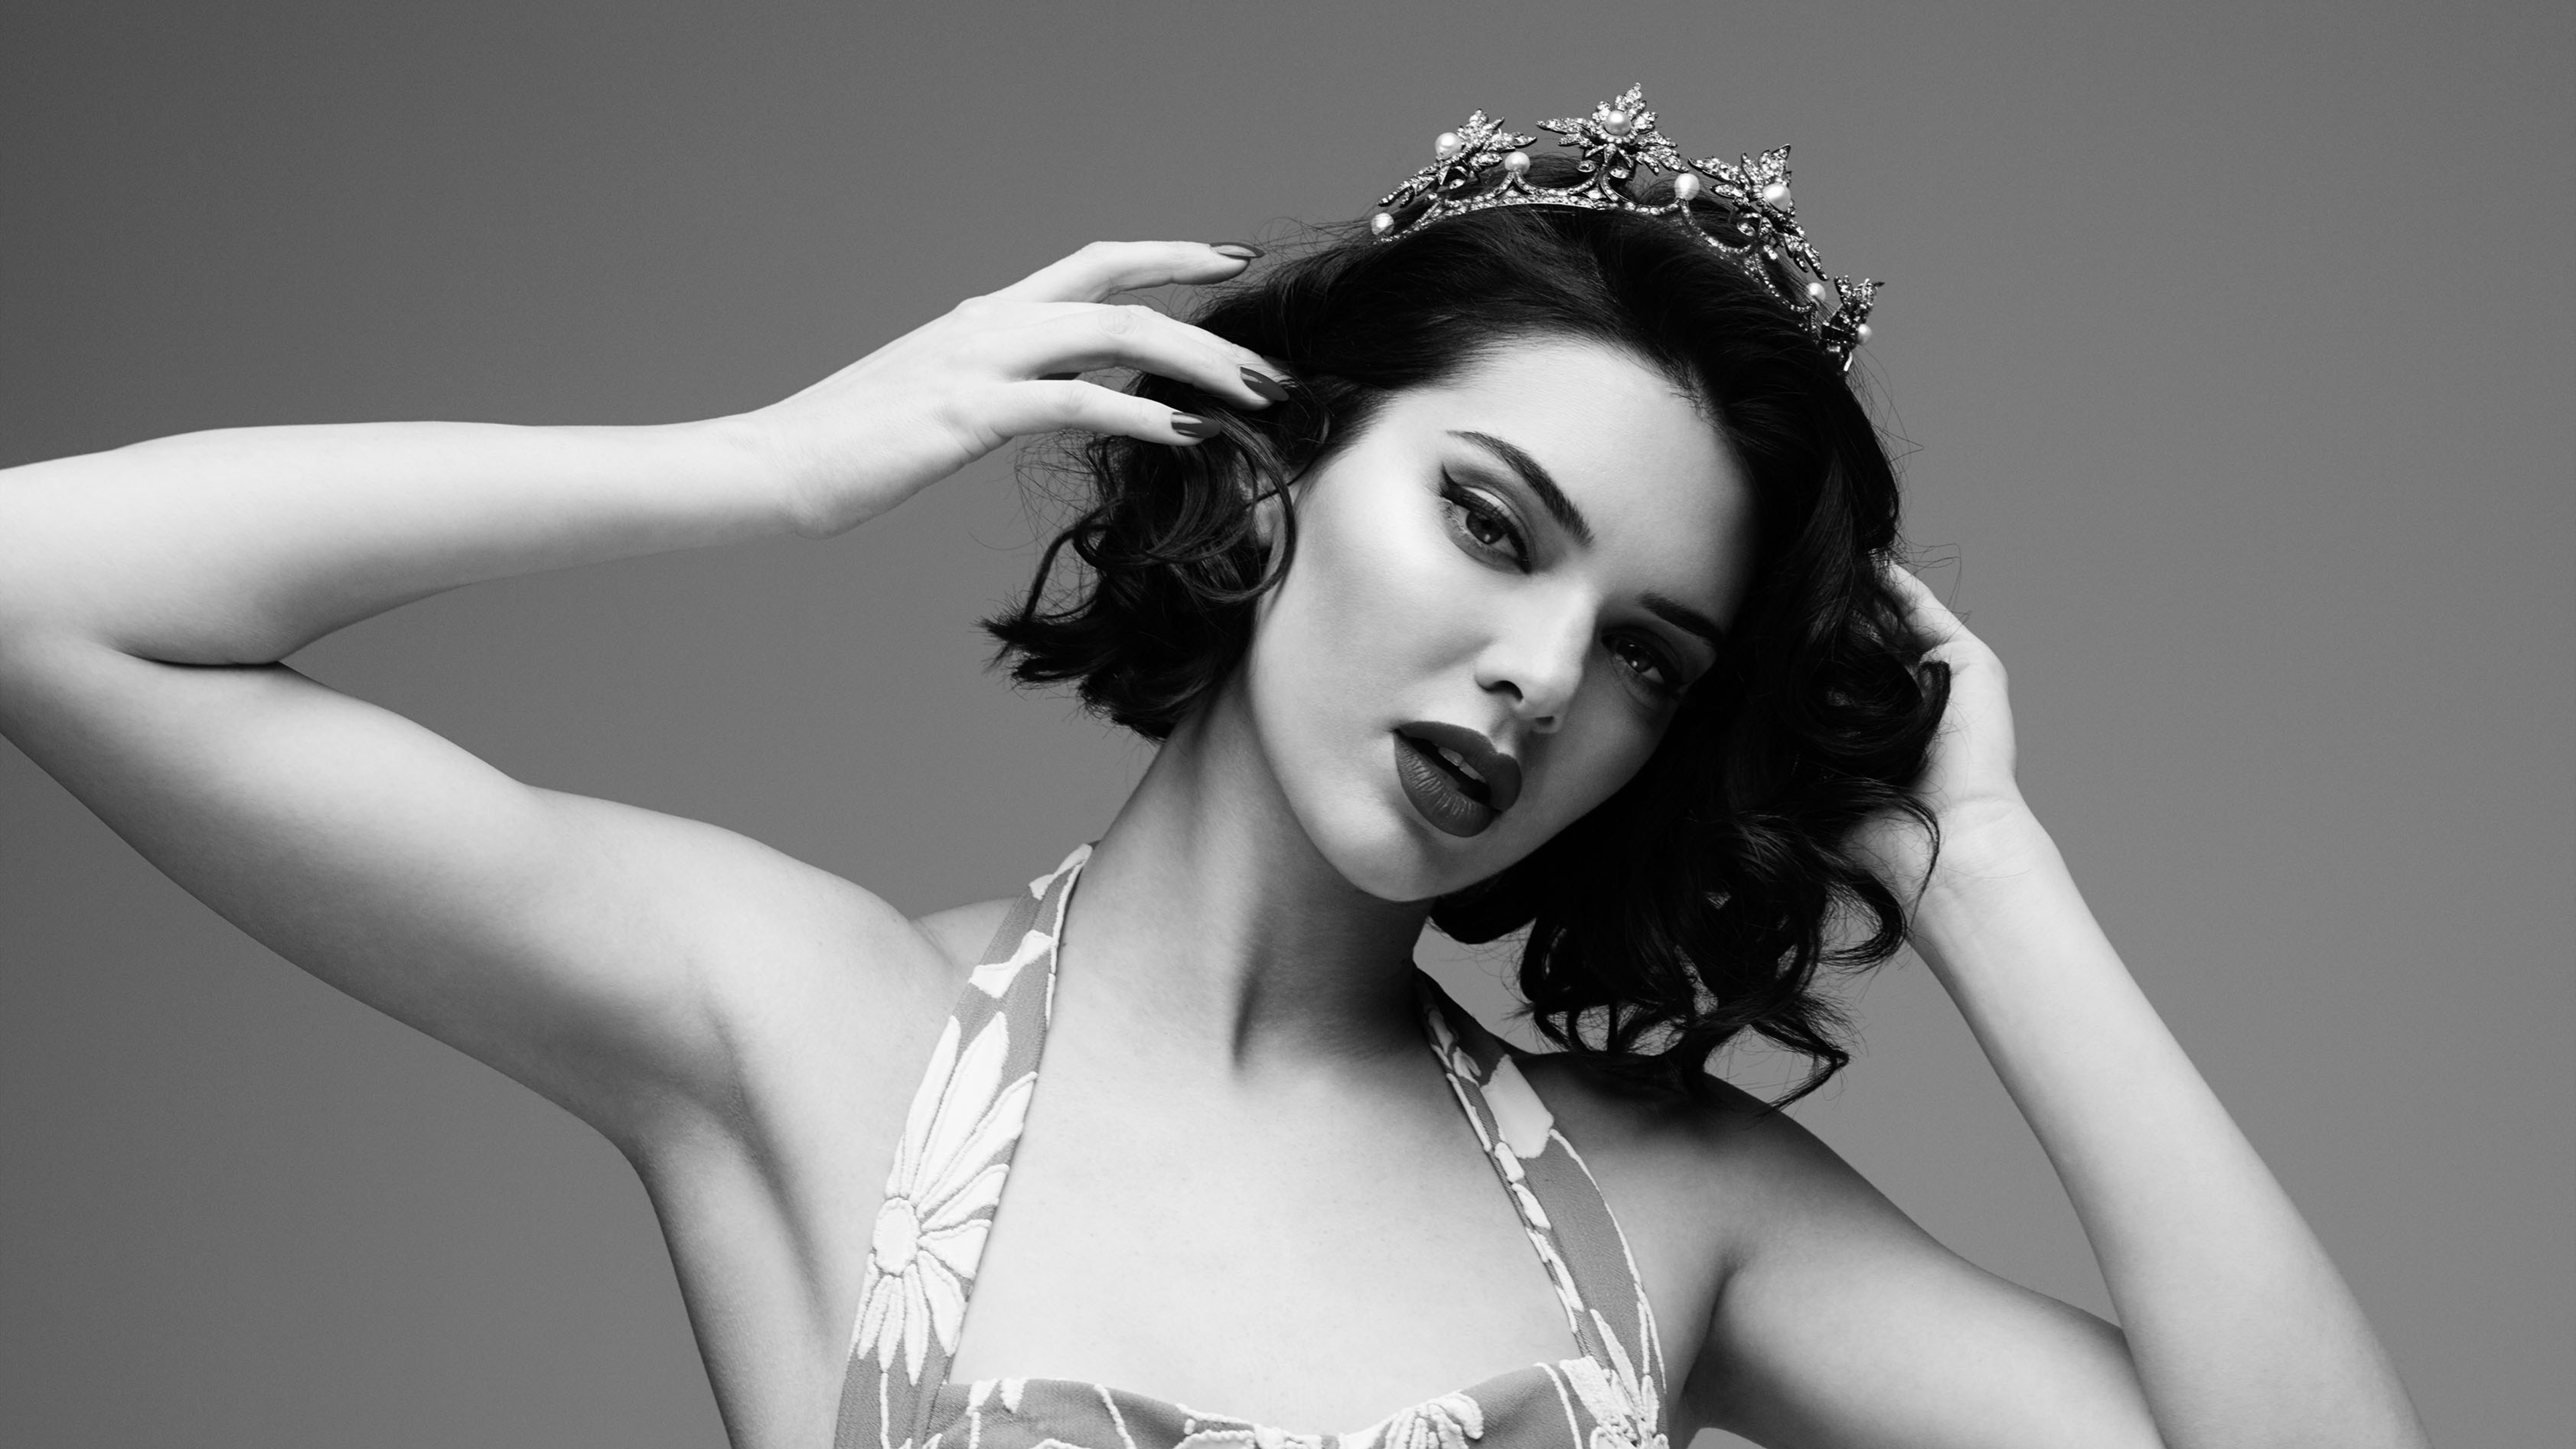 7680x4320 Kendall Jenner Marilyn Monroe Black And White Photoshoot